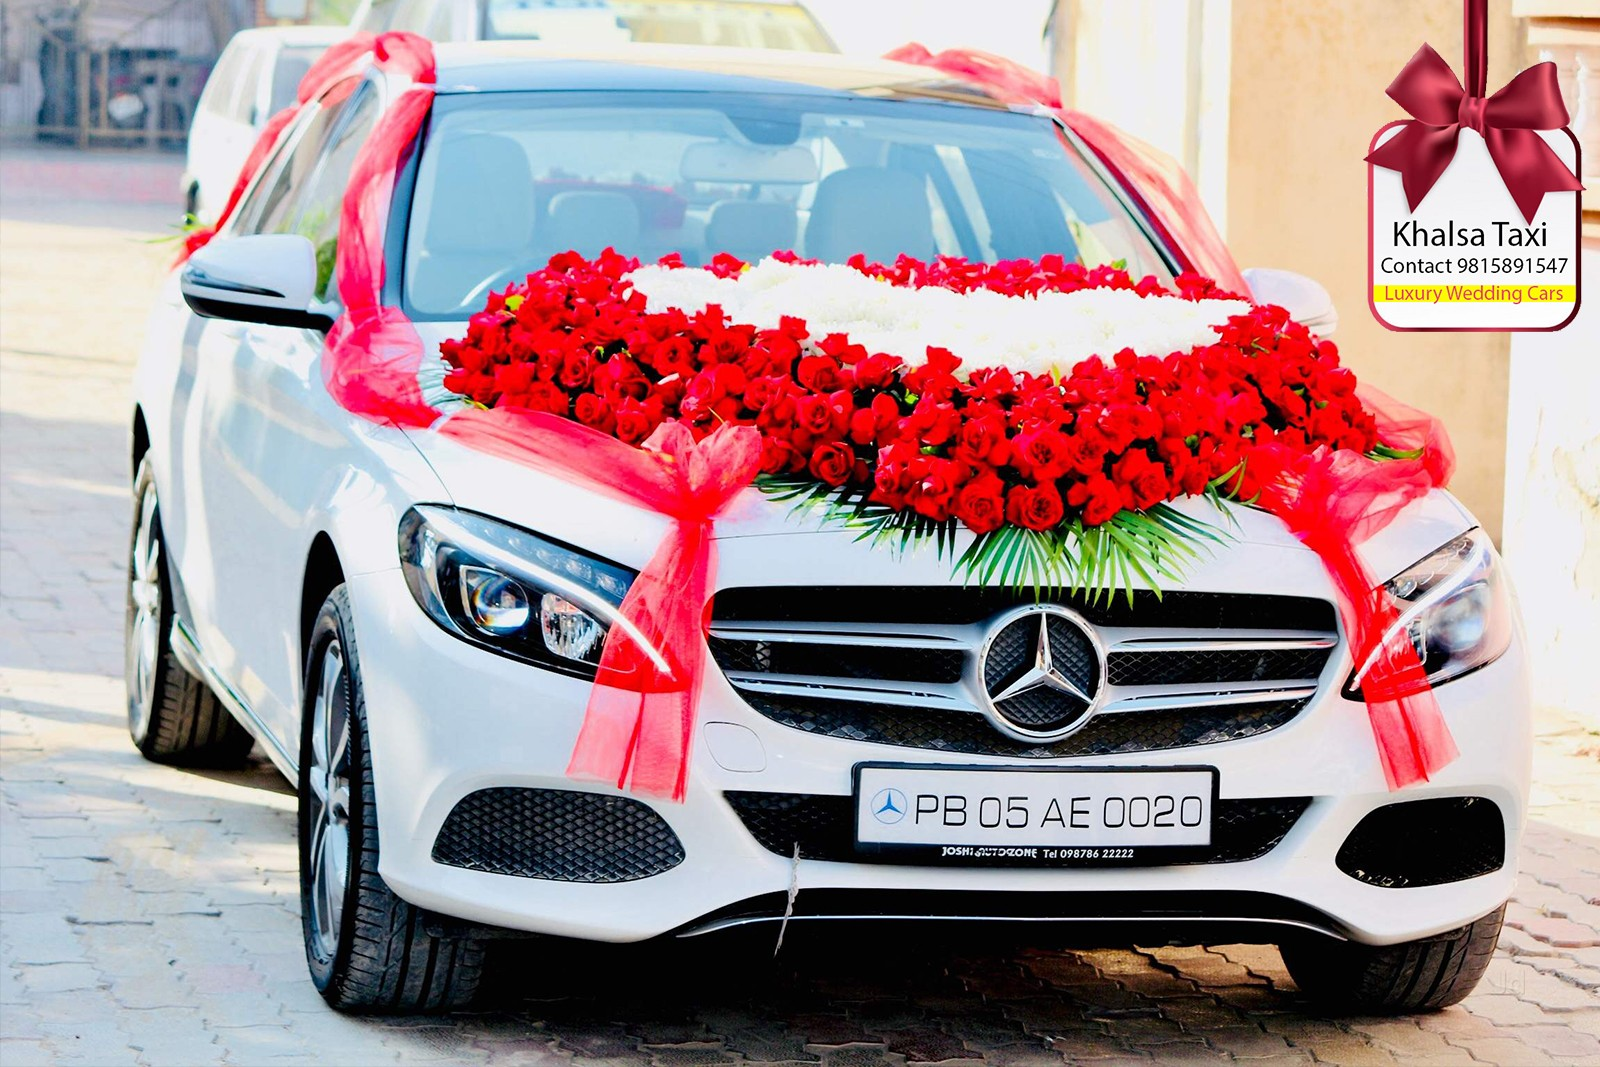 Doli cars in Kalka, Wedding cars in Kalka, Shaddi cars in Kalka, luxury cars in Kalka and Kalka Shaddi cars for wedding